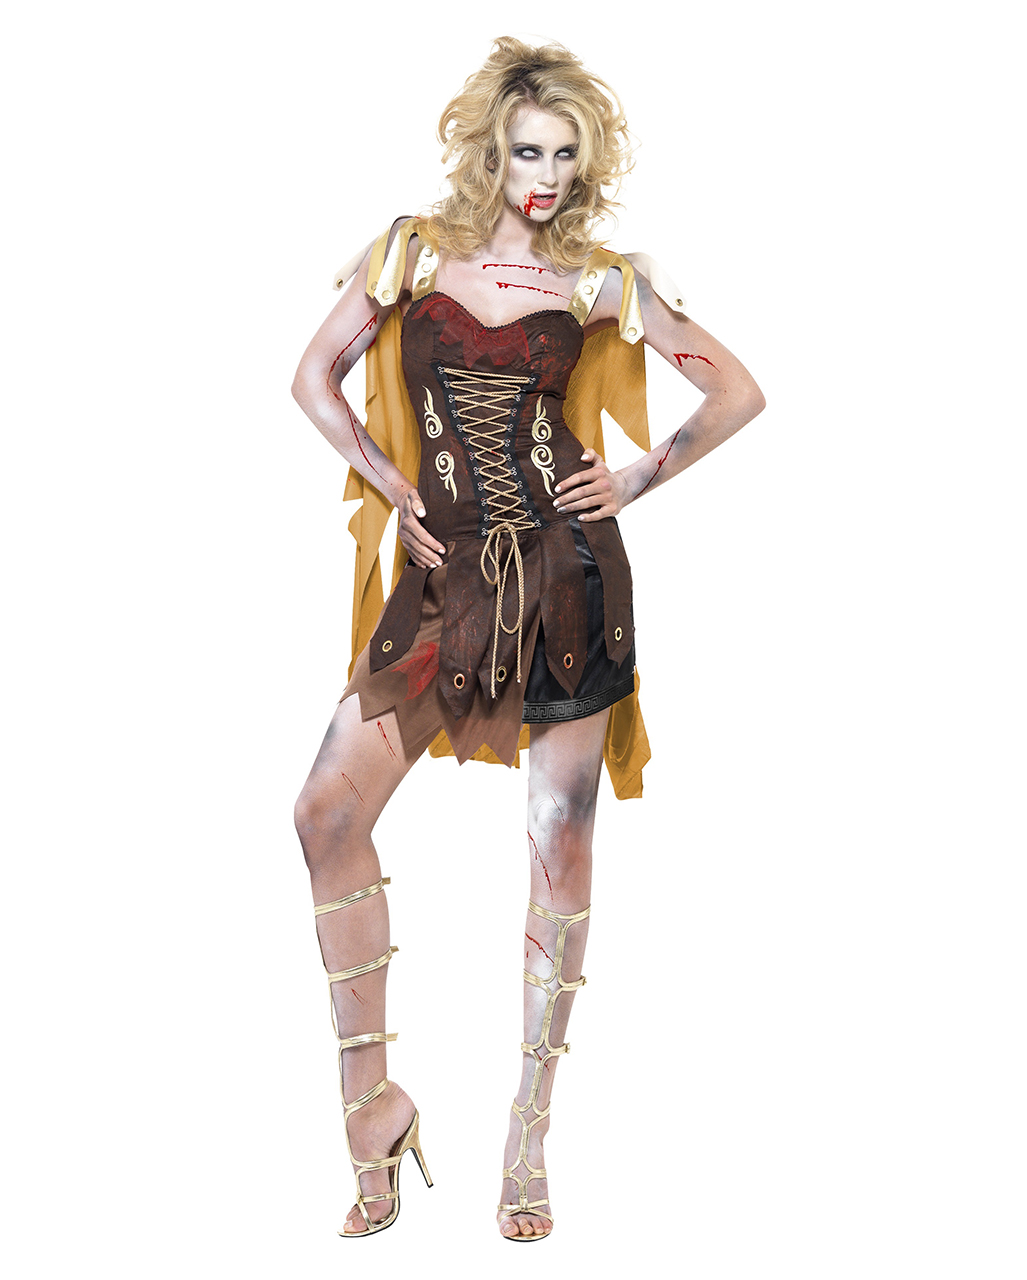 Zombie Gladiator costume for women Zombie Gladiator costume for women ...  sc 1 st  Horror-Shop.com & Zombie Gladiator costume for women | Cheap Costume Zombie Walk ...